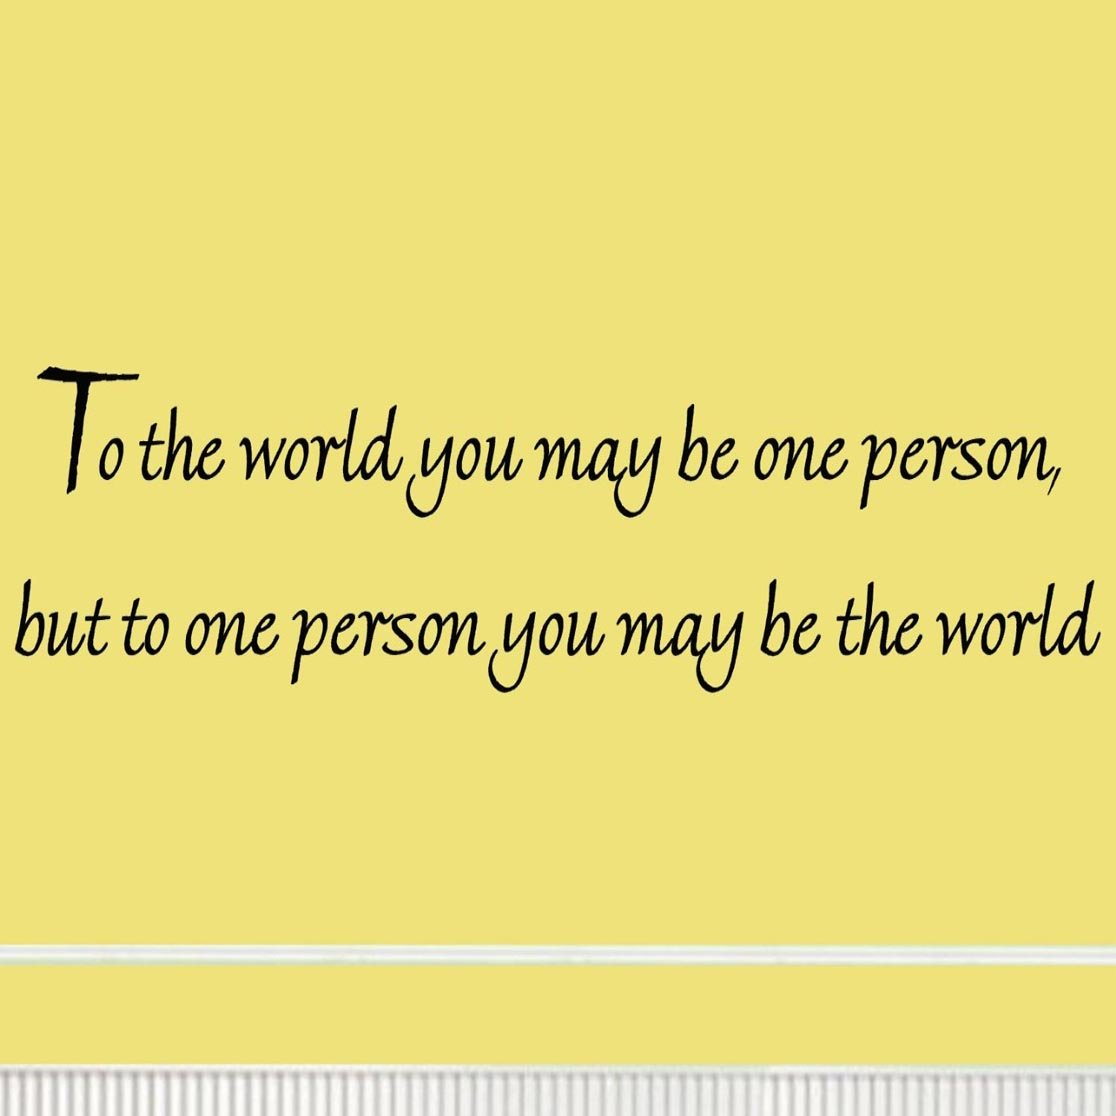 Amazon.com: To the World You May Be One Person but to One Person You ...